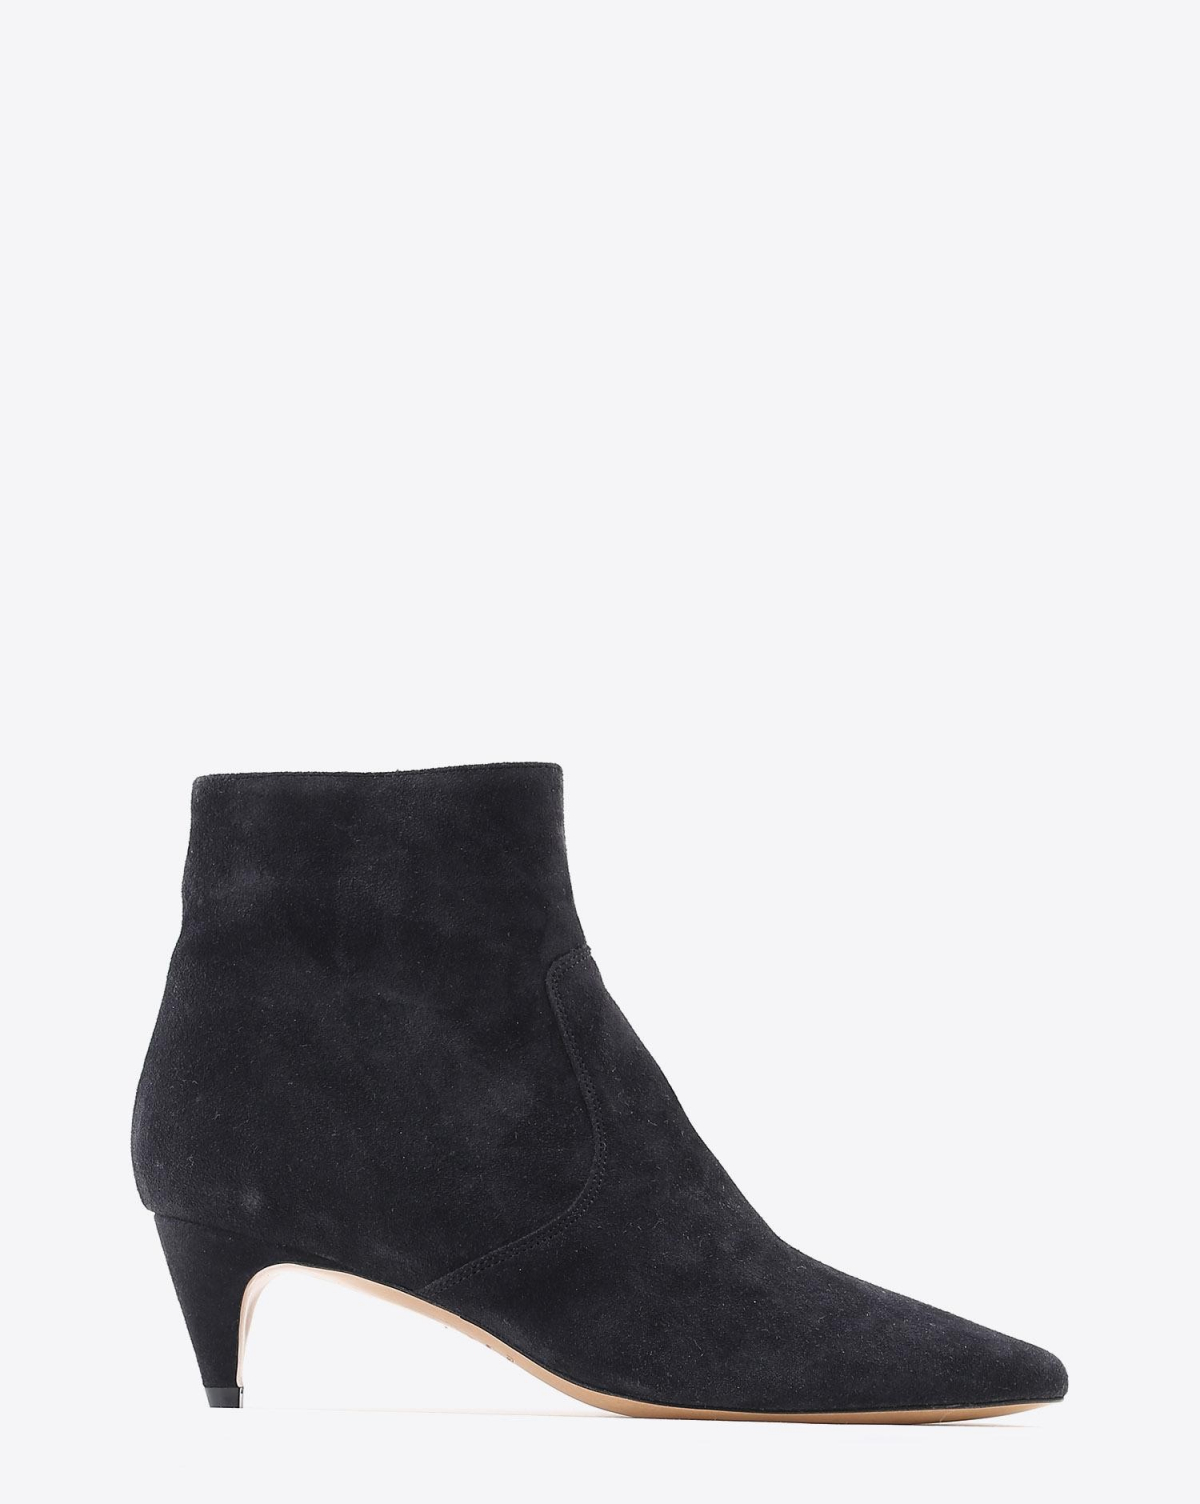 Isabel Marant Chaussures Boots DERST -  Suede Faded Black